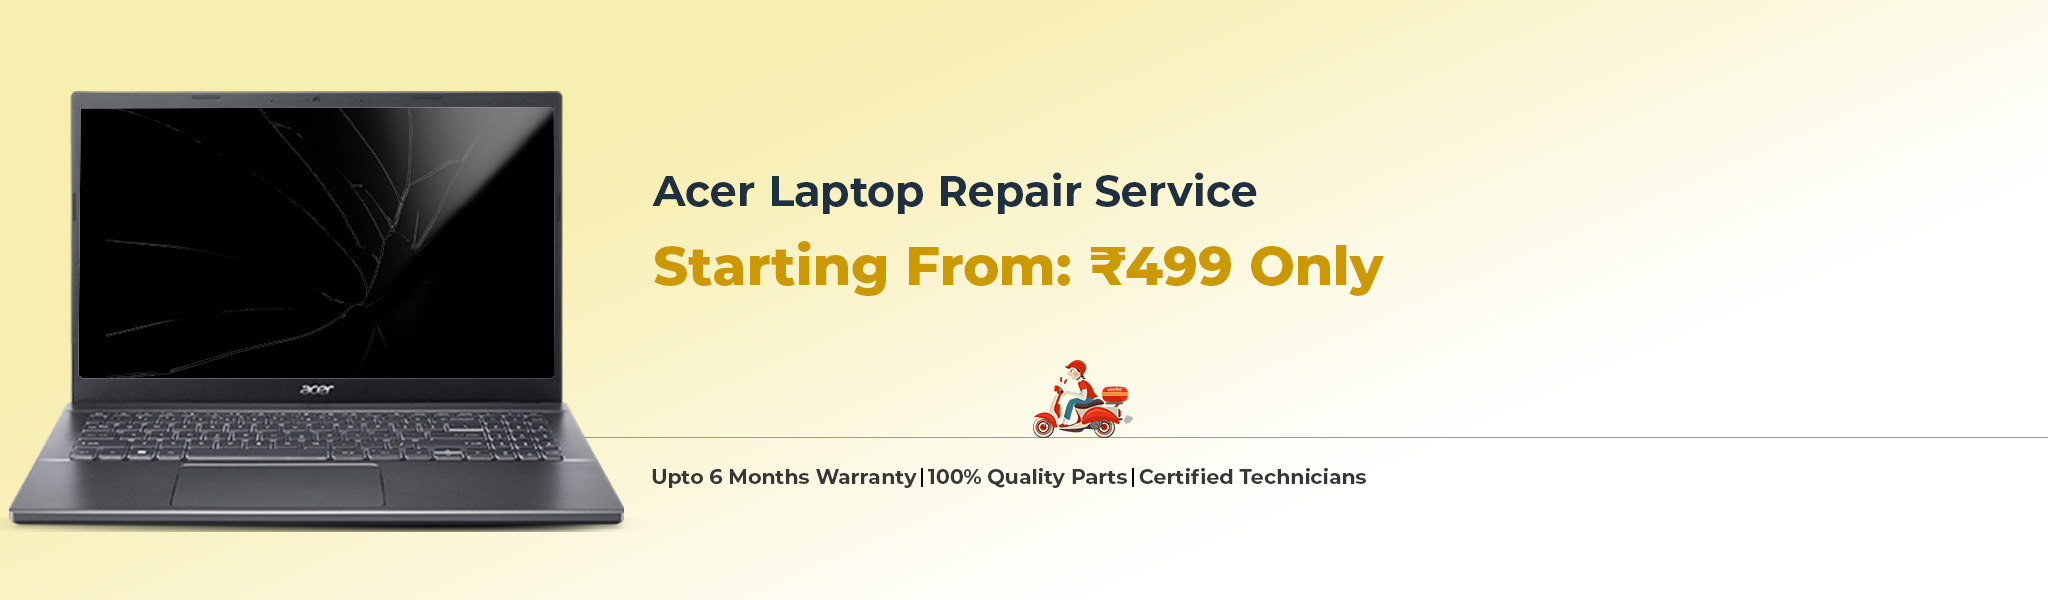 acer-laptop-repair.jpg